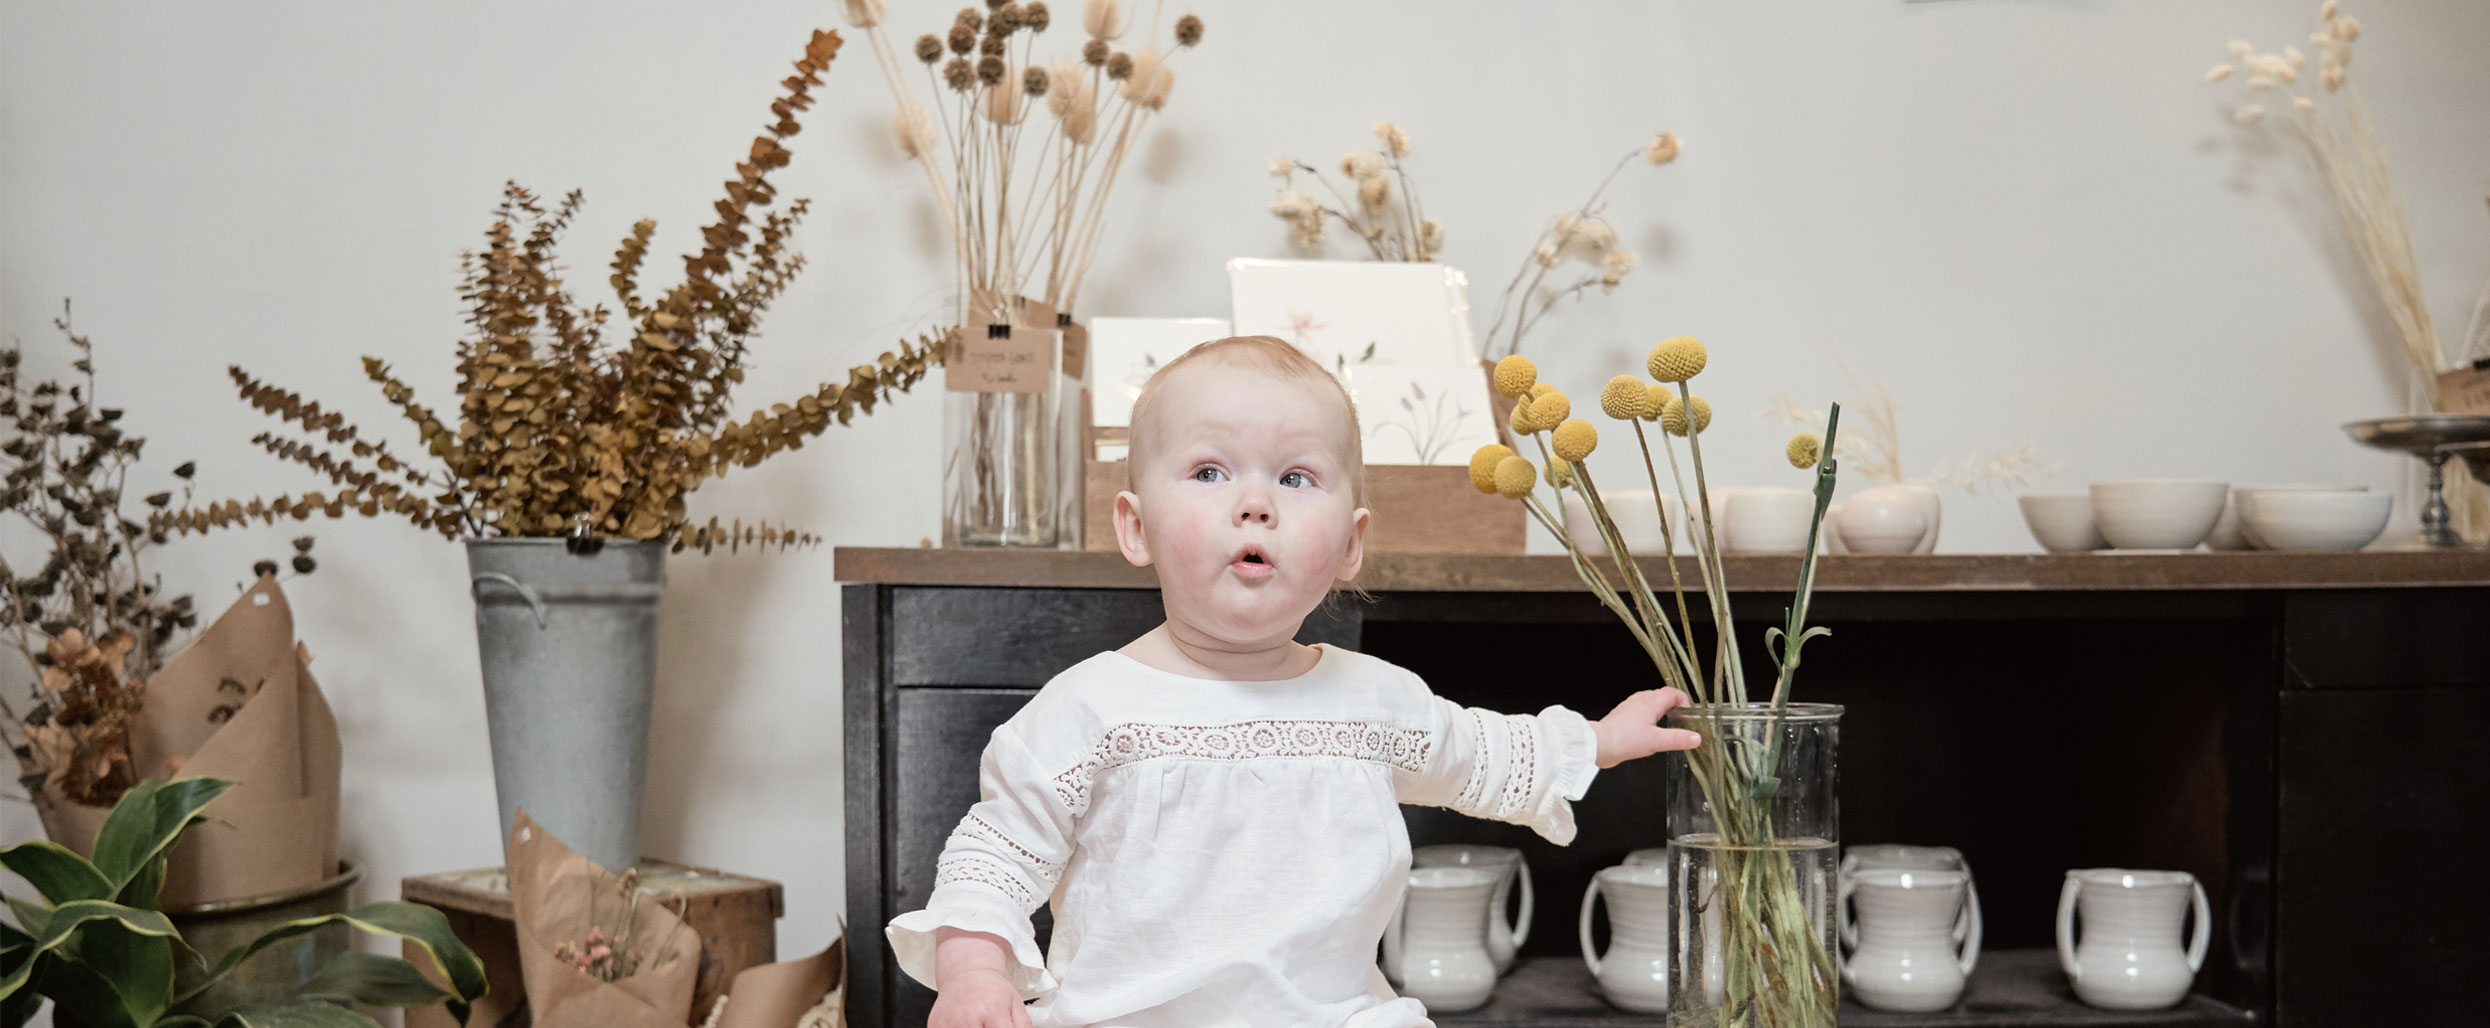 What a fun photoshoot collaboration with local maker,  Sisterland  with her beautiful and comfortable clothing for independent girls.